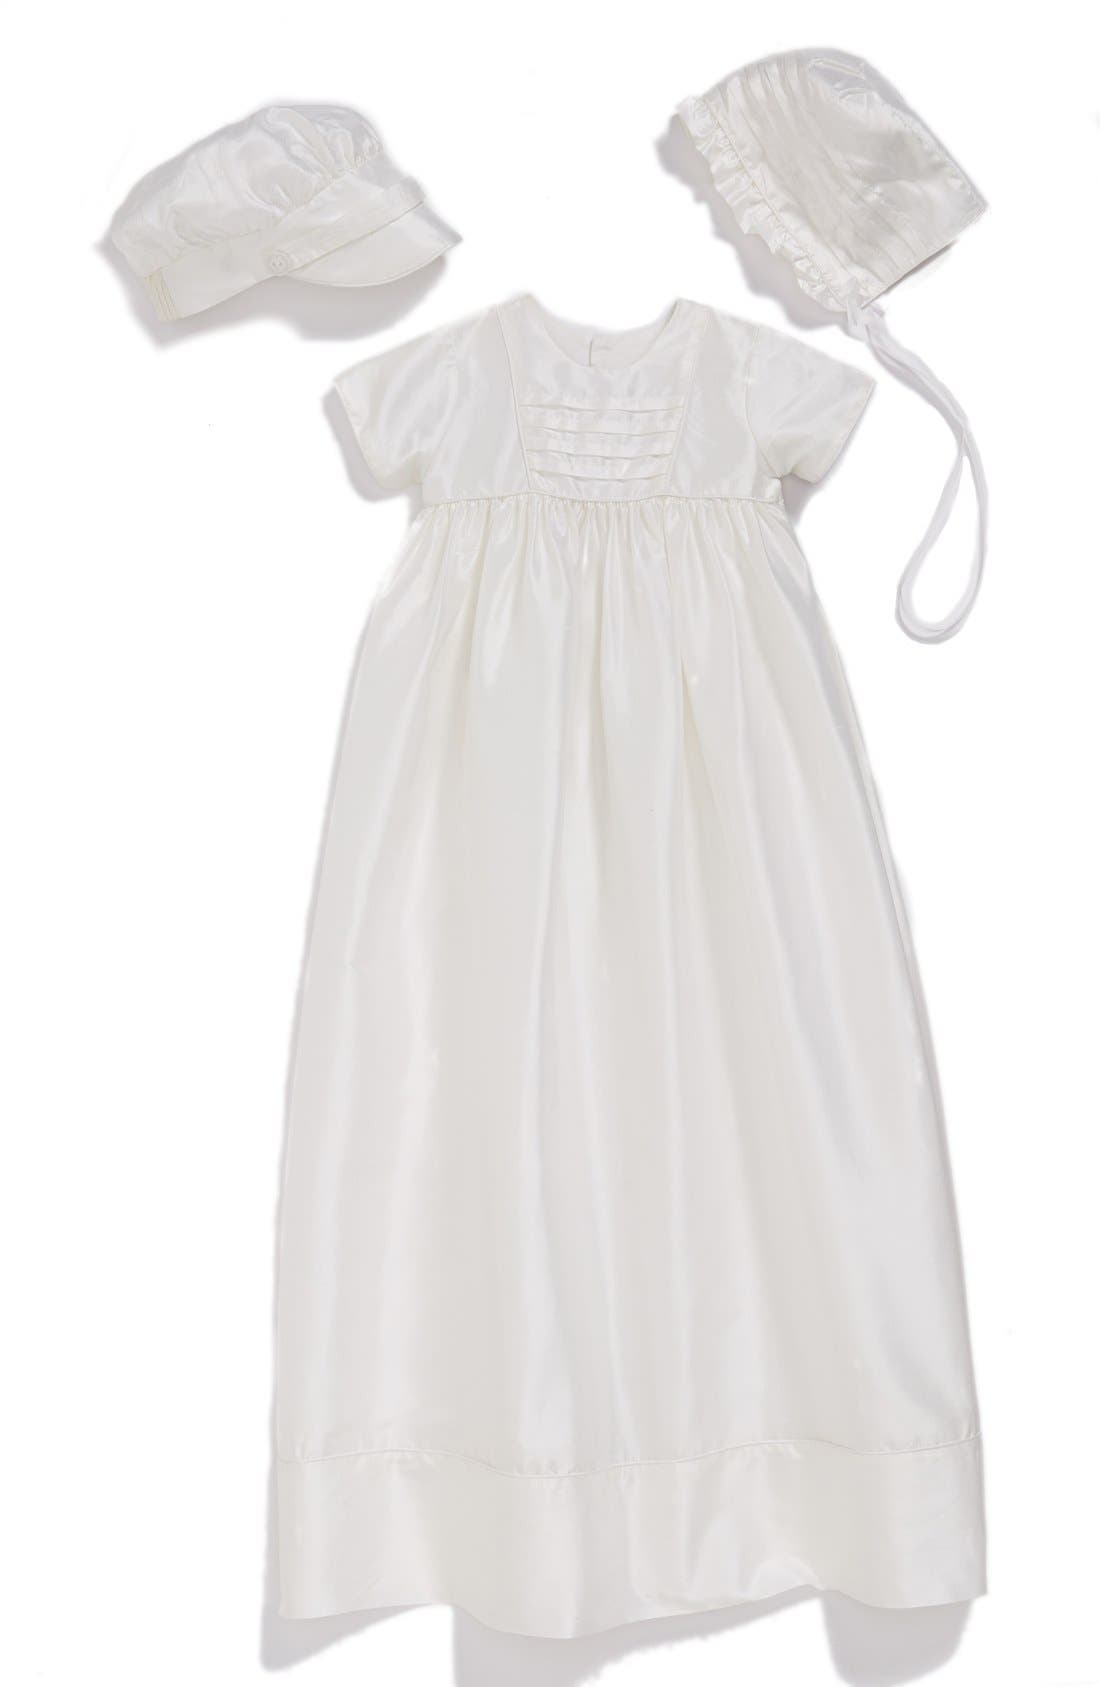 Little Things Mean a Lot Dupioni Christening Gown with Hat and Bonnet Set (Baby)